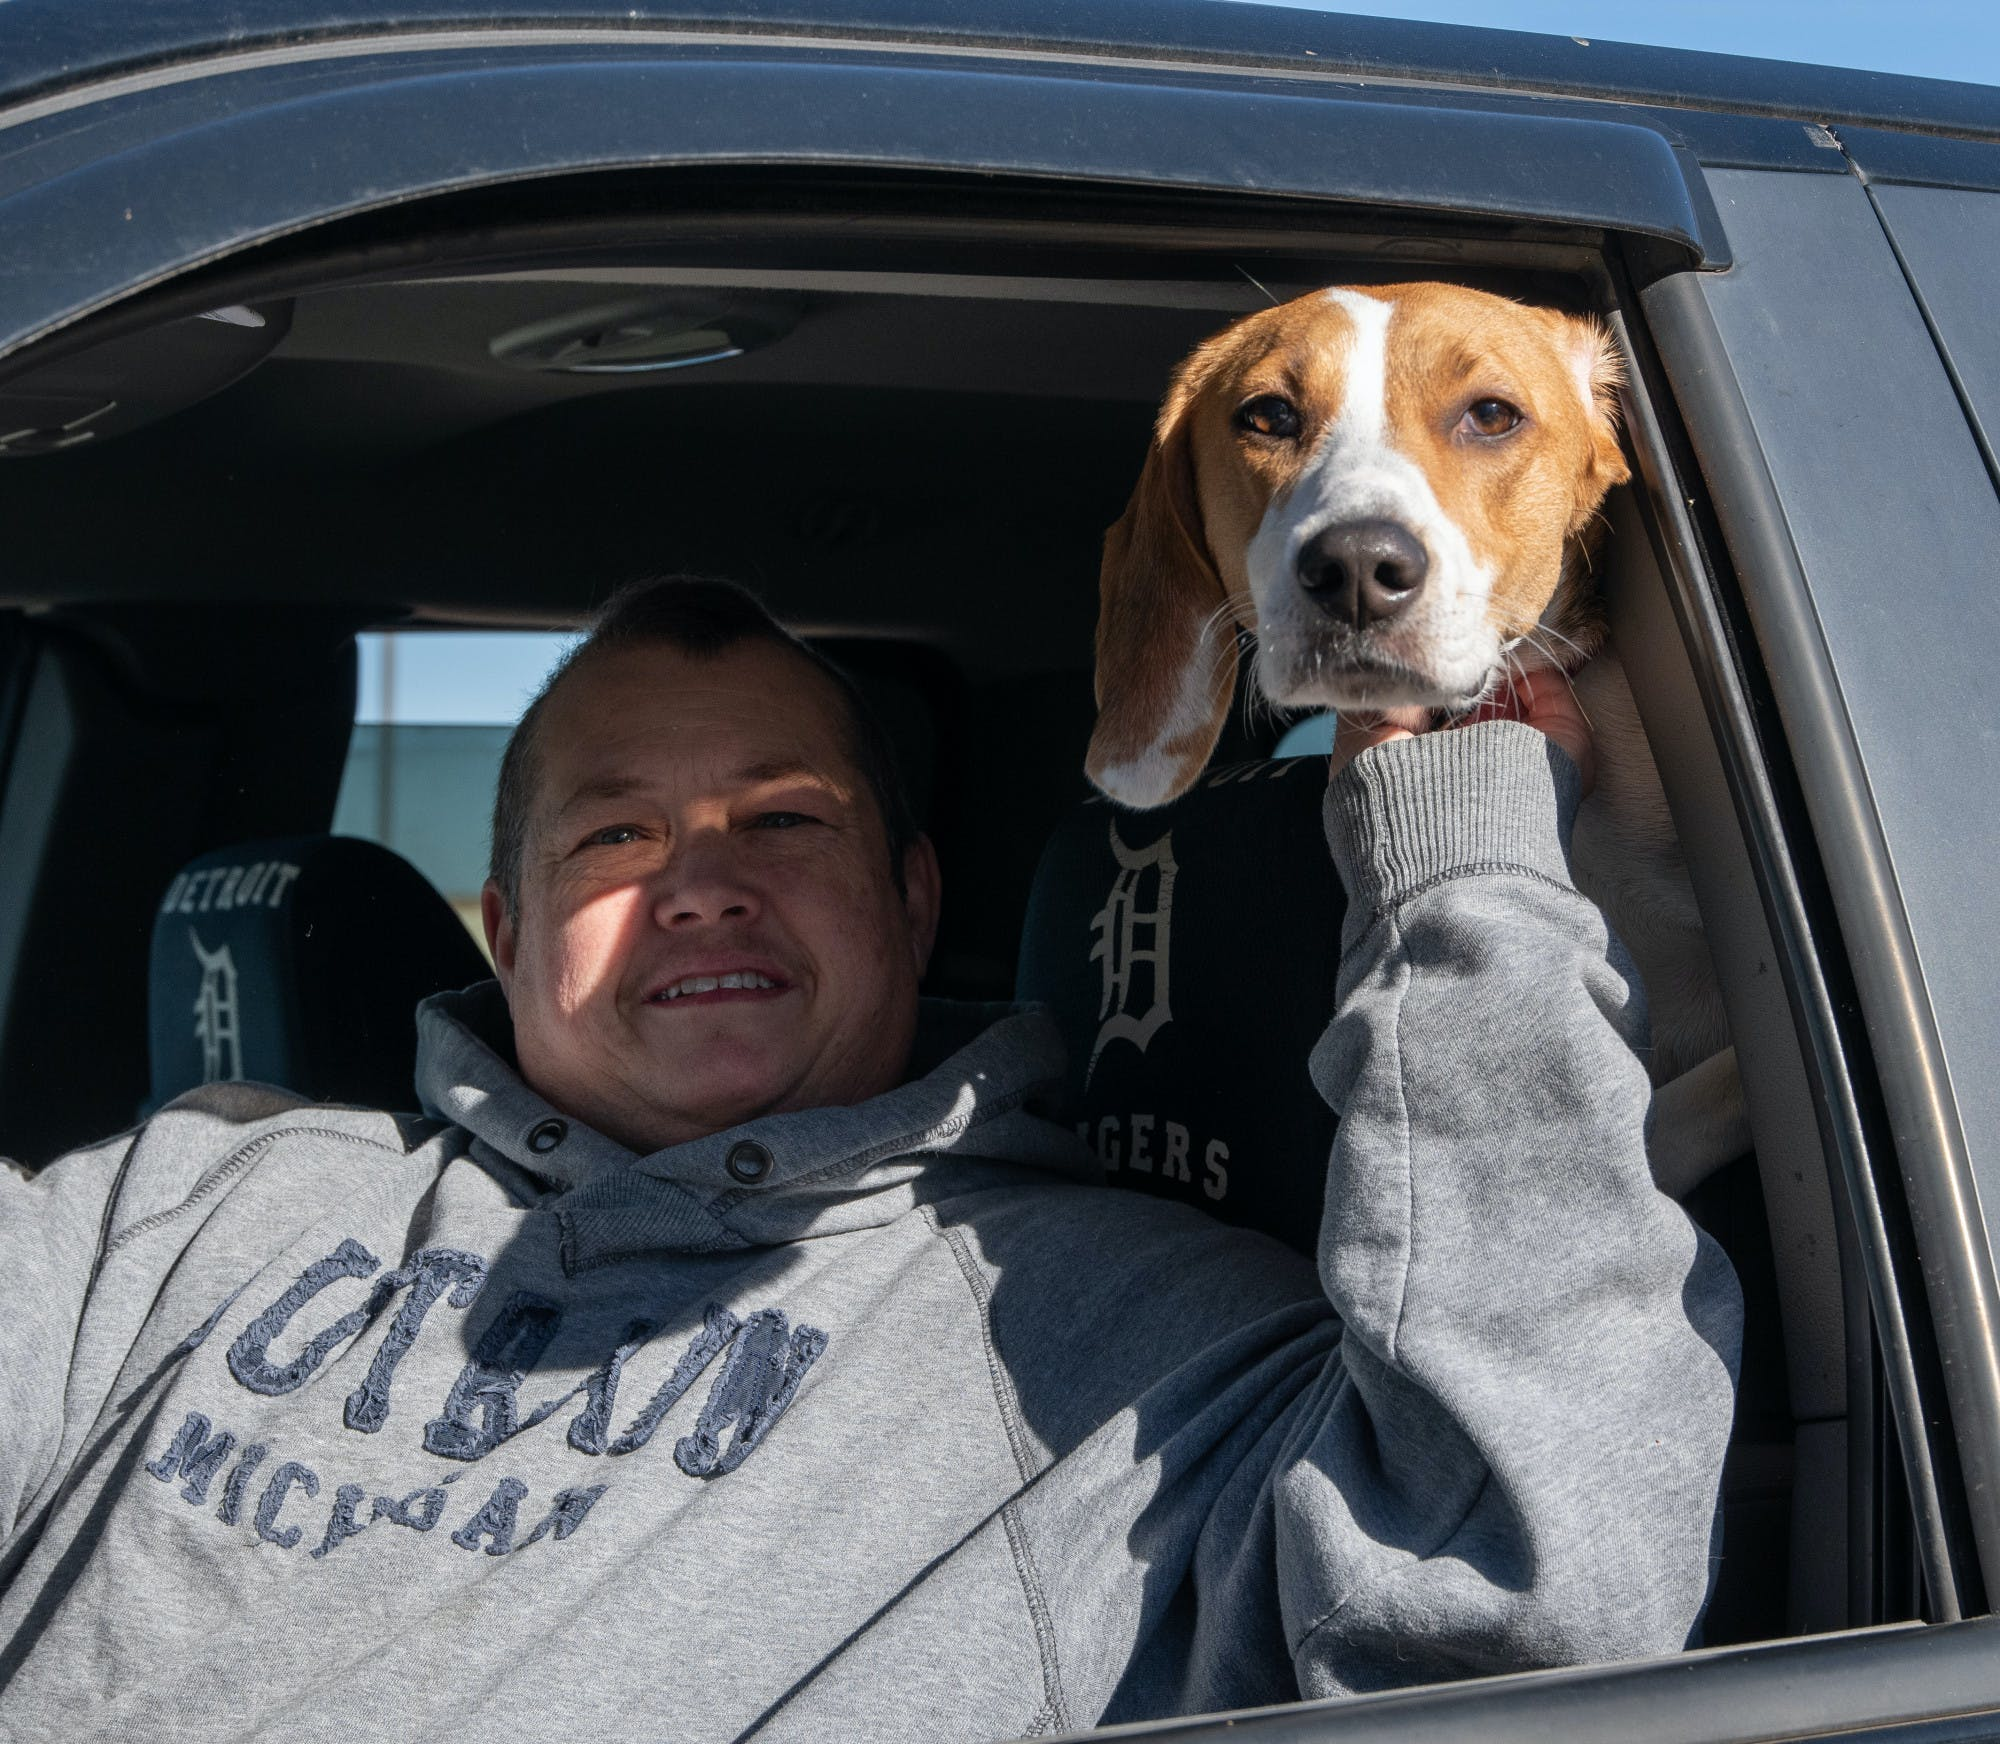 A man and his dog pose for a photo in a car.